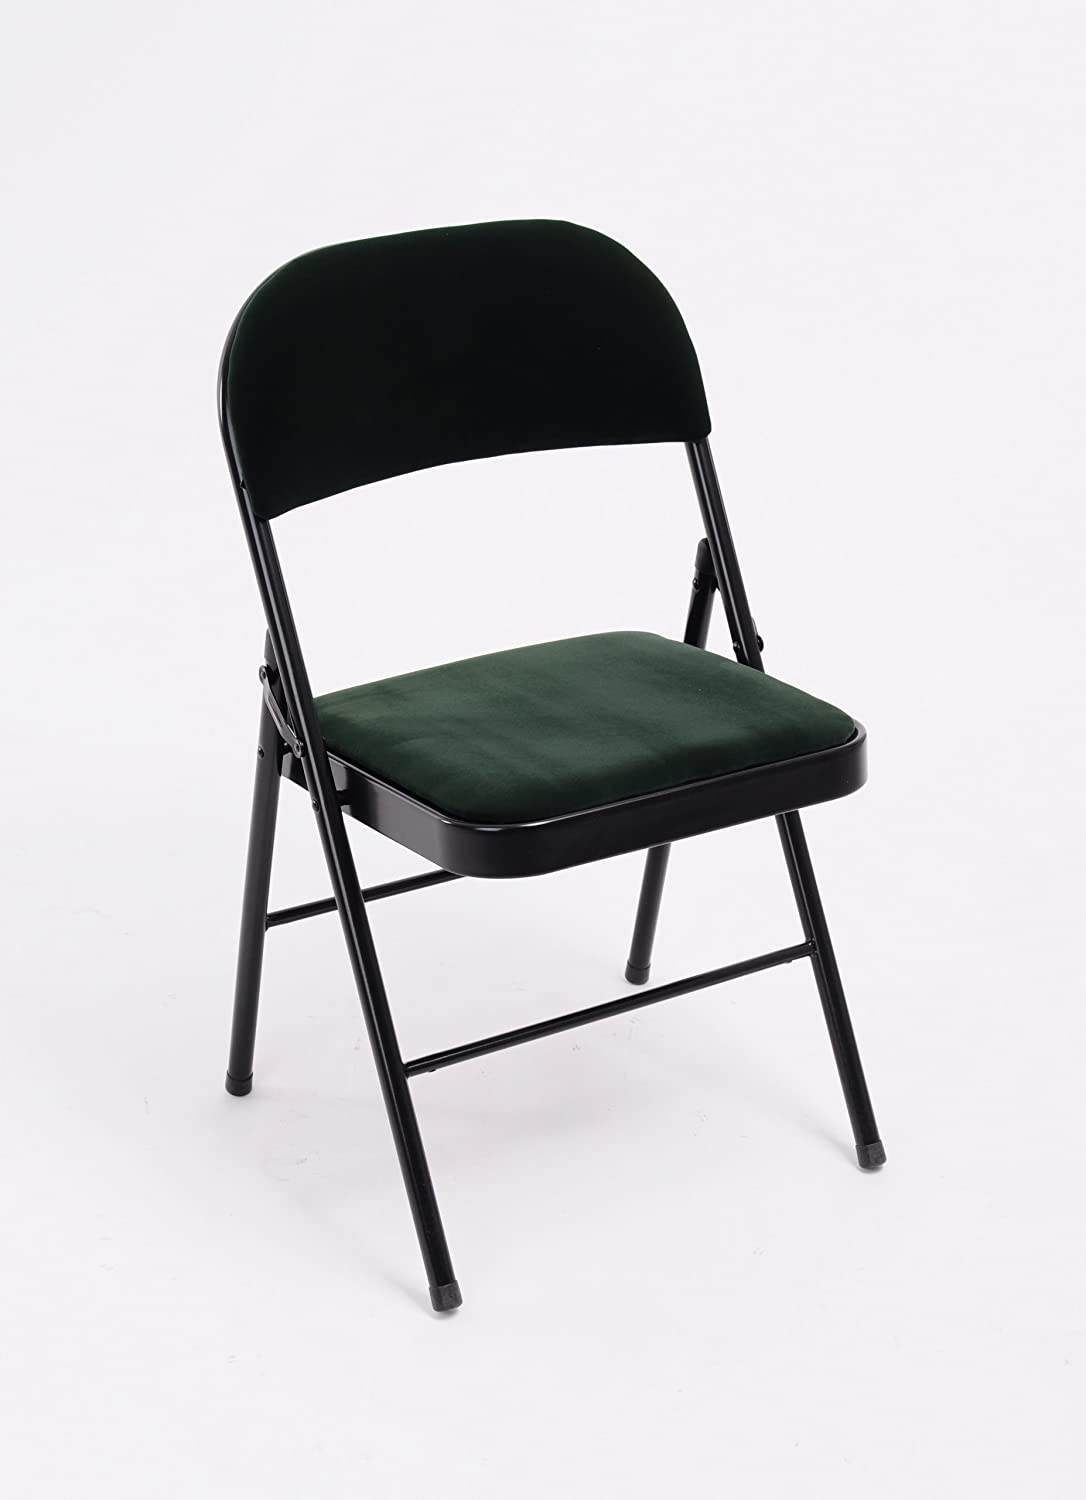 Specialshare Simplylife Metal Folding Chair With Cushion Green Amazon Co Uk Kitchen Home